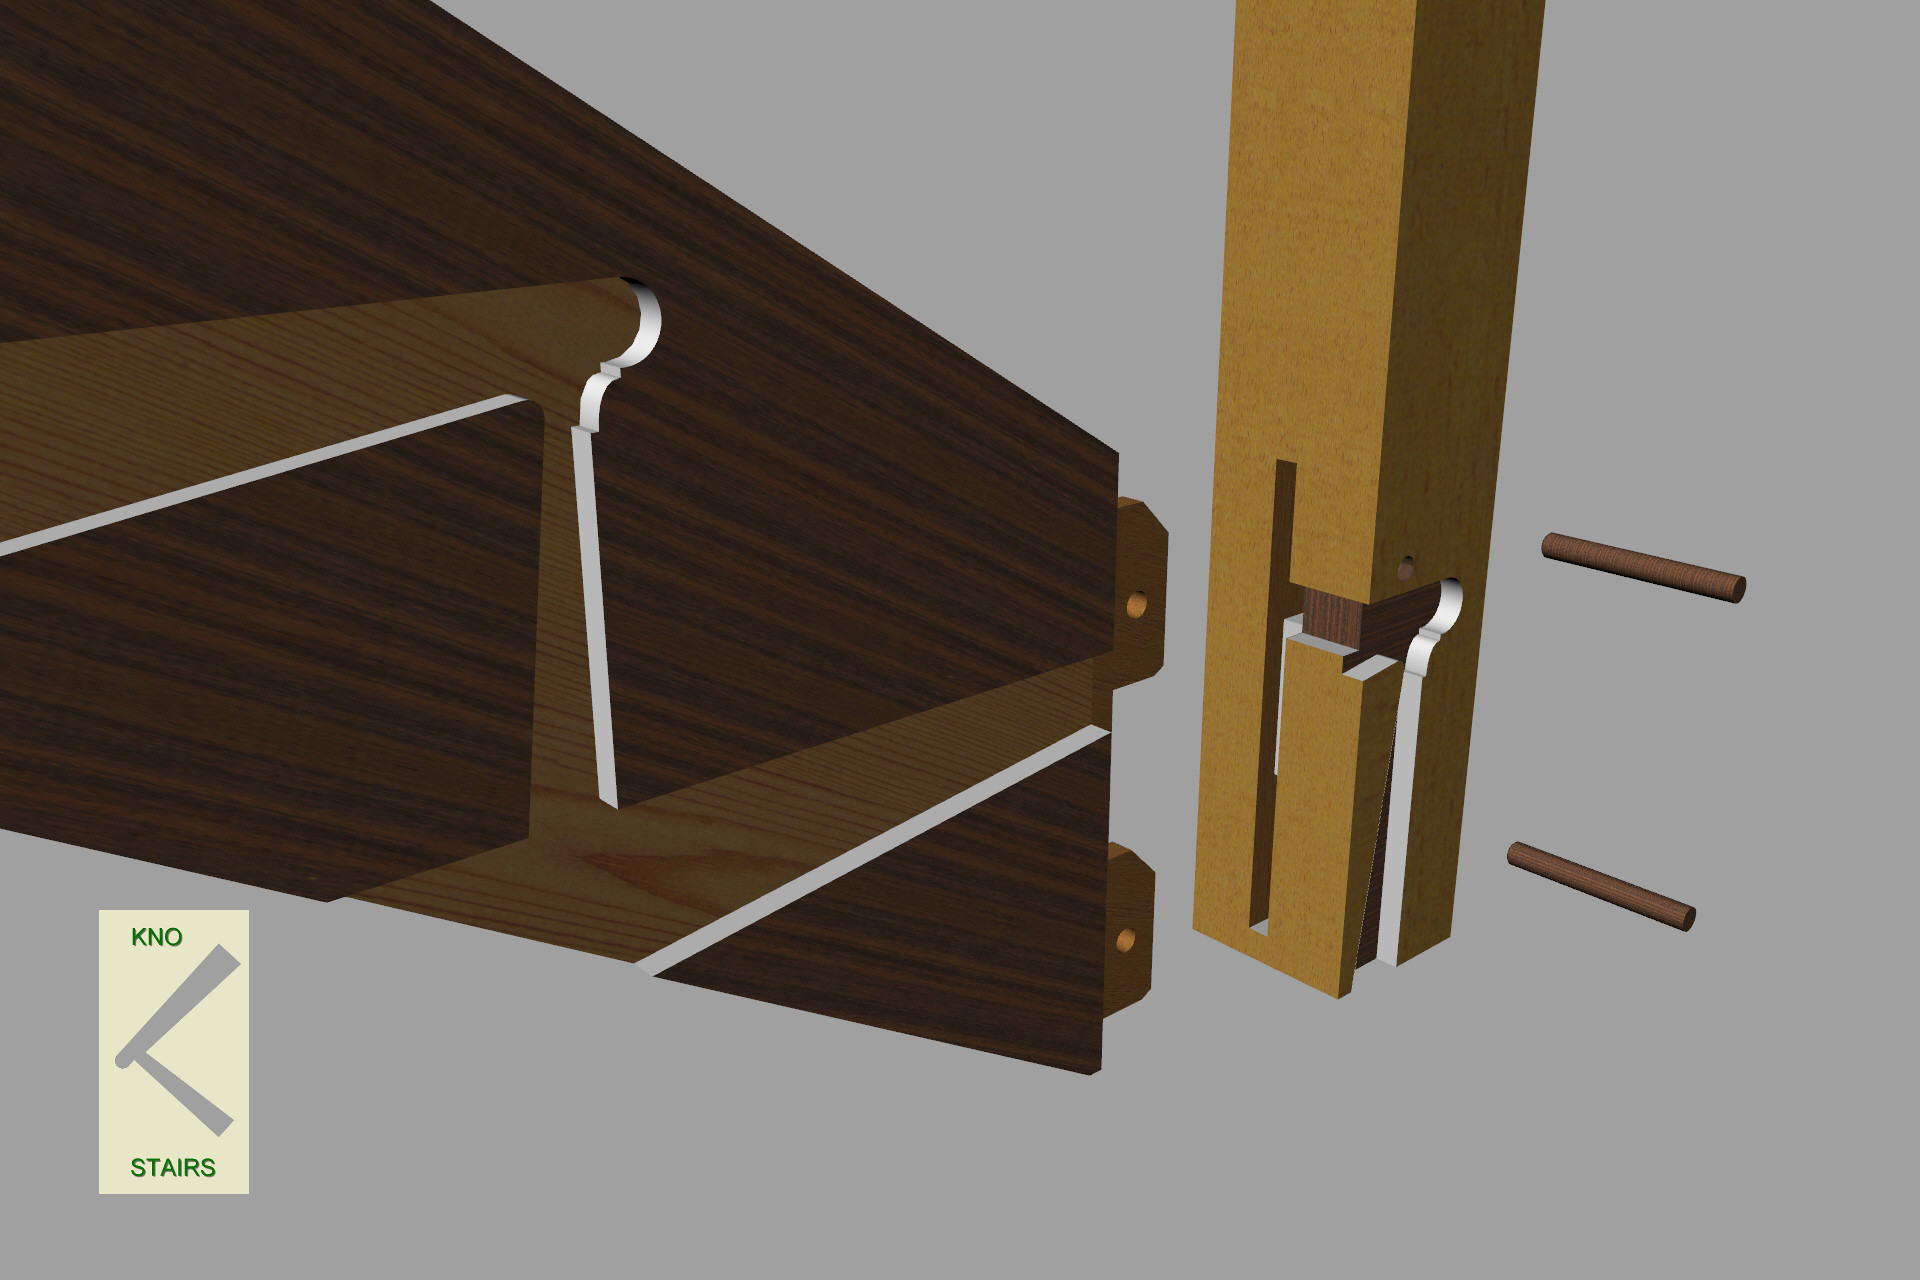 losed string and newel post